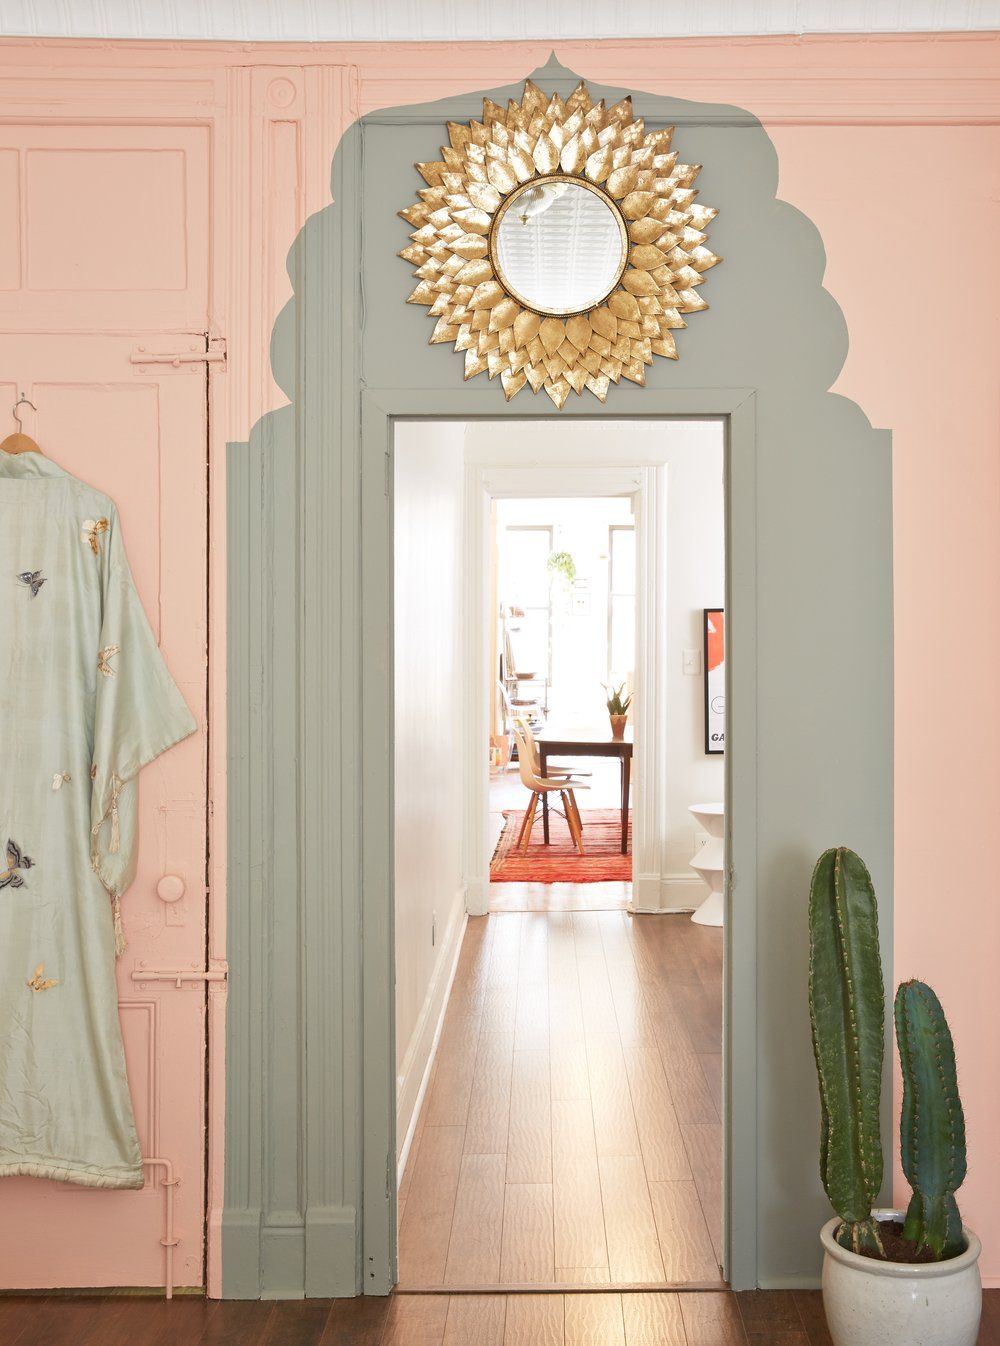 One Hour Wows: How To Make A Dramatic Room Statement In 60 Minutes